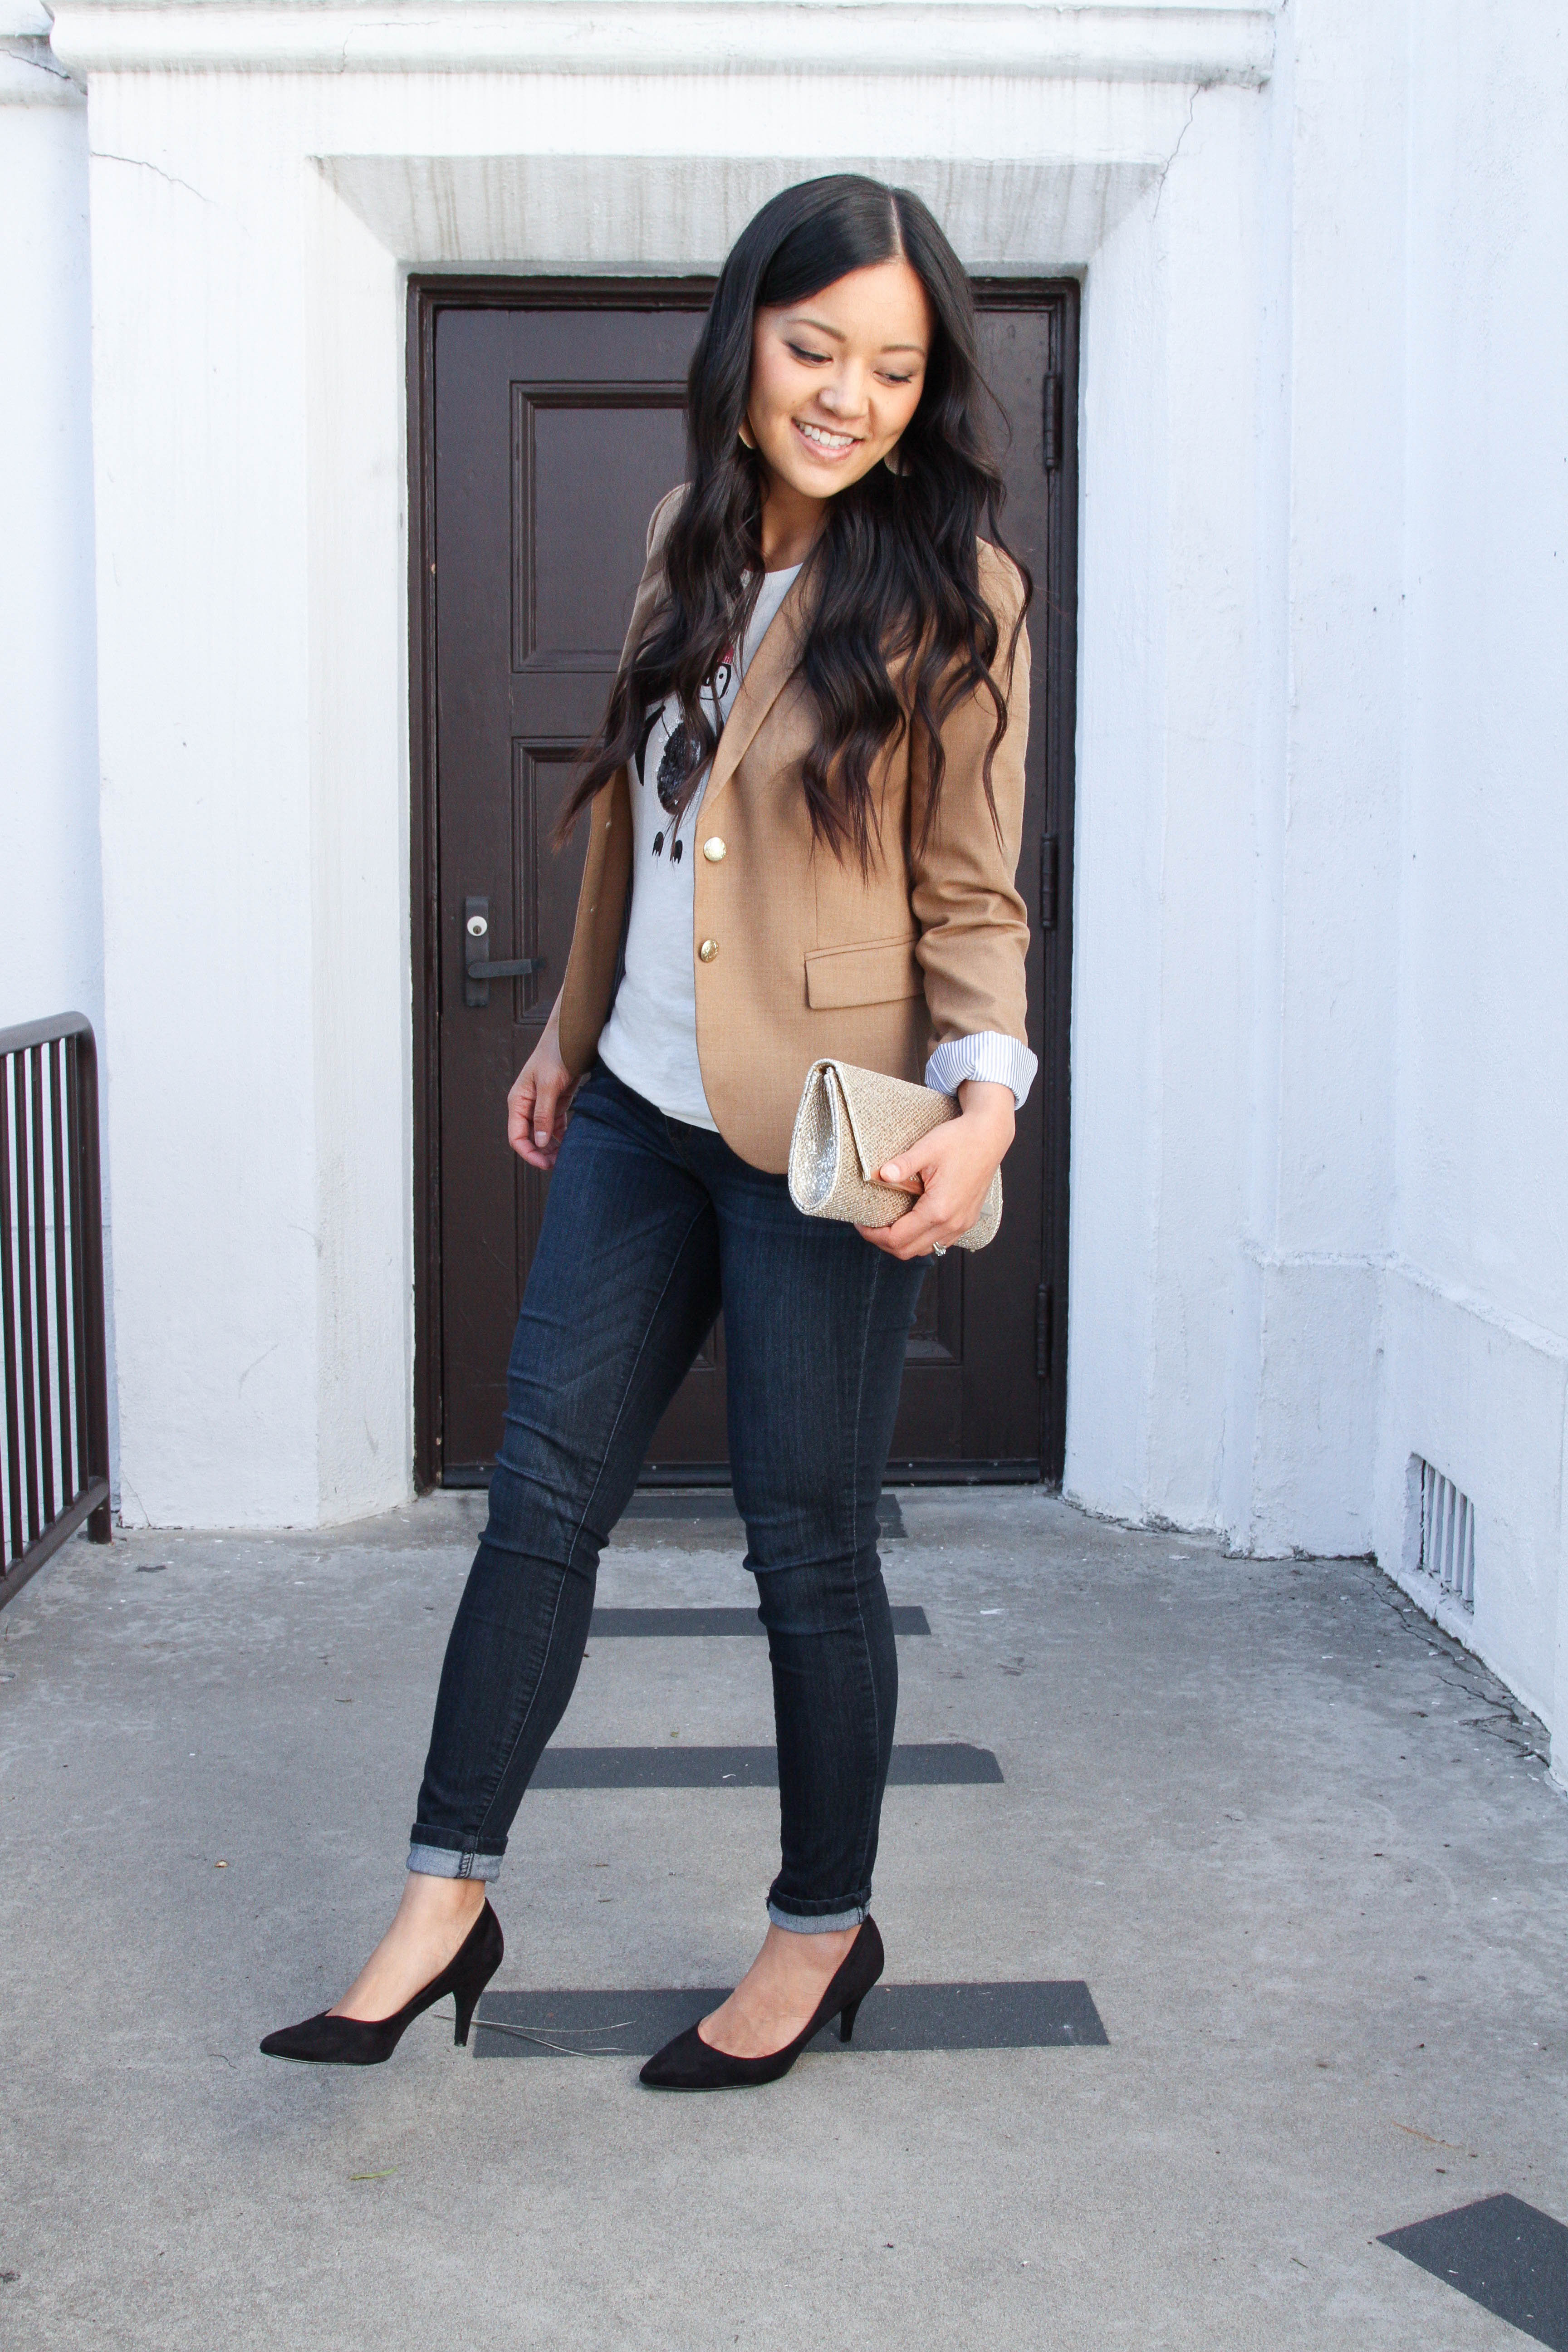 Skinnies + black pumps + tan blazer + gold clutch + holiday t-shirt